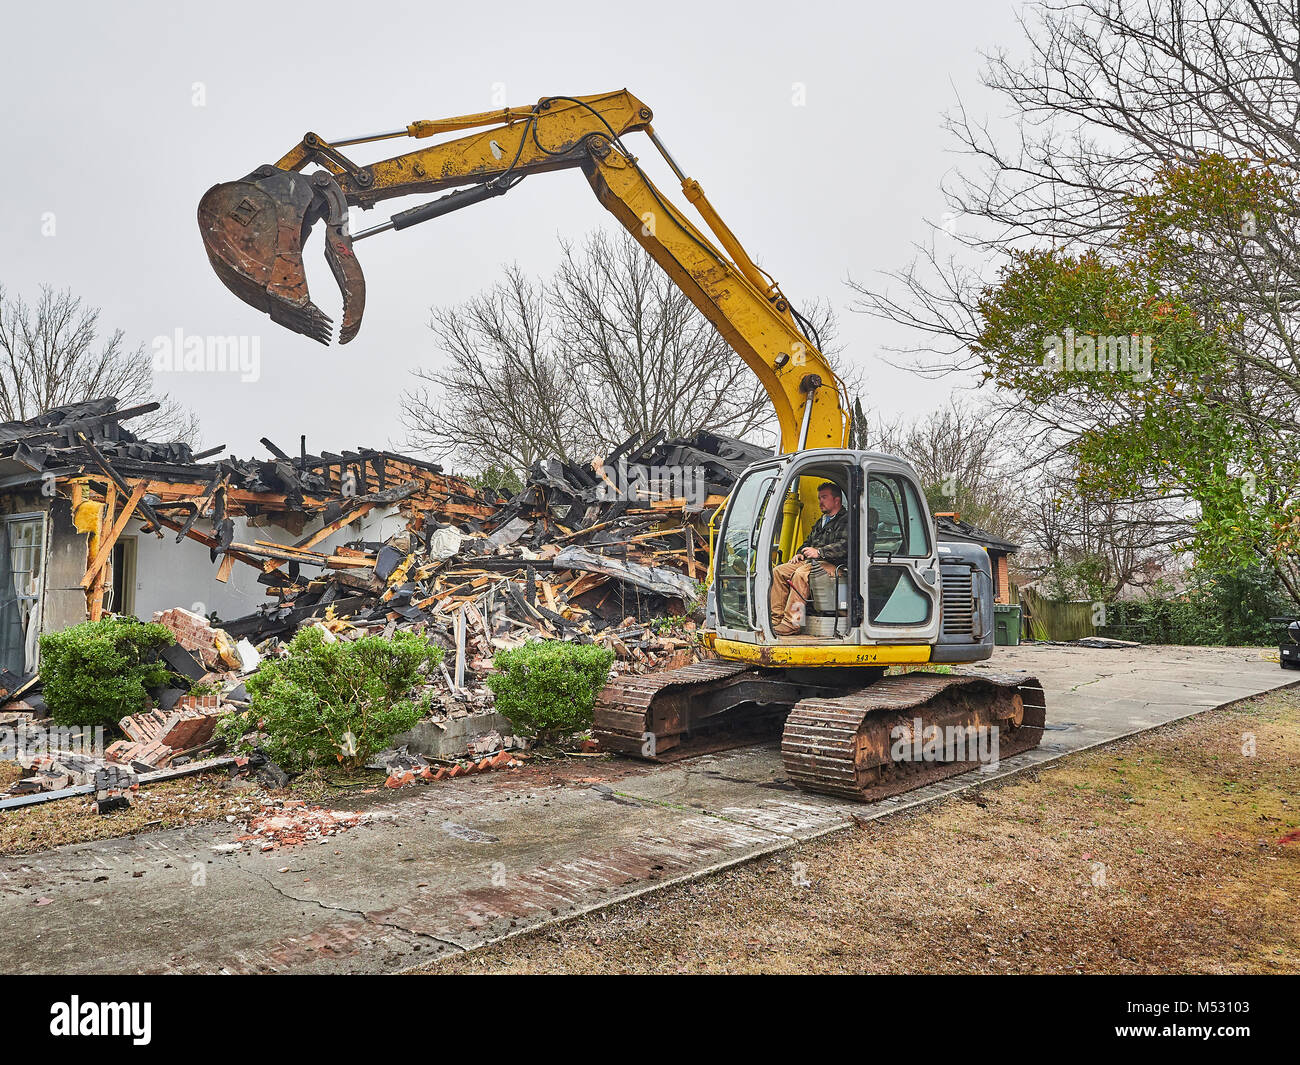 Workers using heavy duty excavator to help demolish a house that caught fire and burned in Montgomery Alabama, USA. - Stock Image